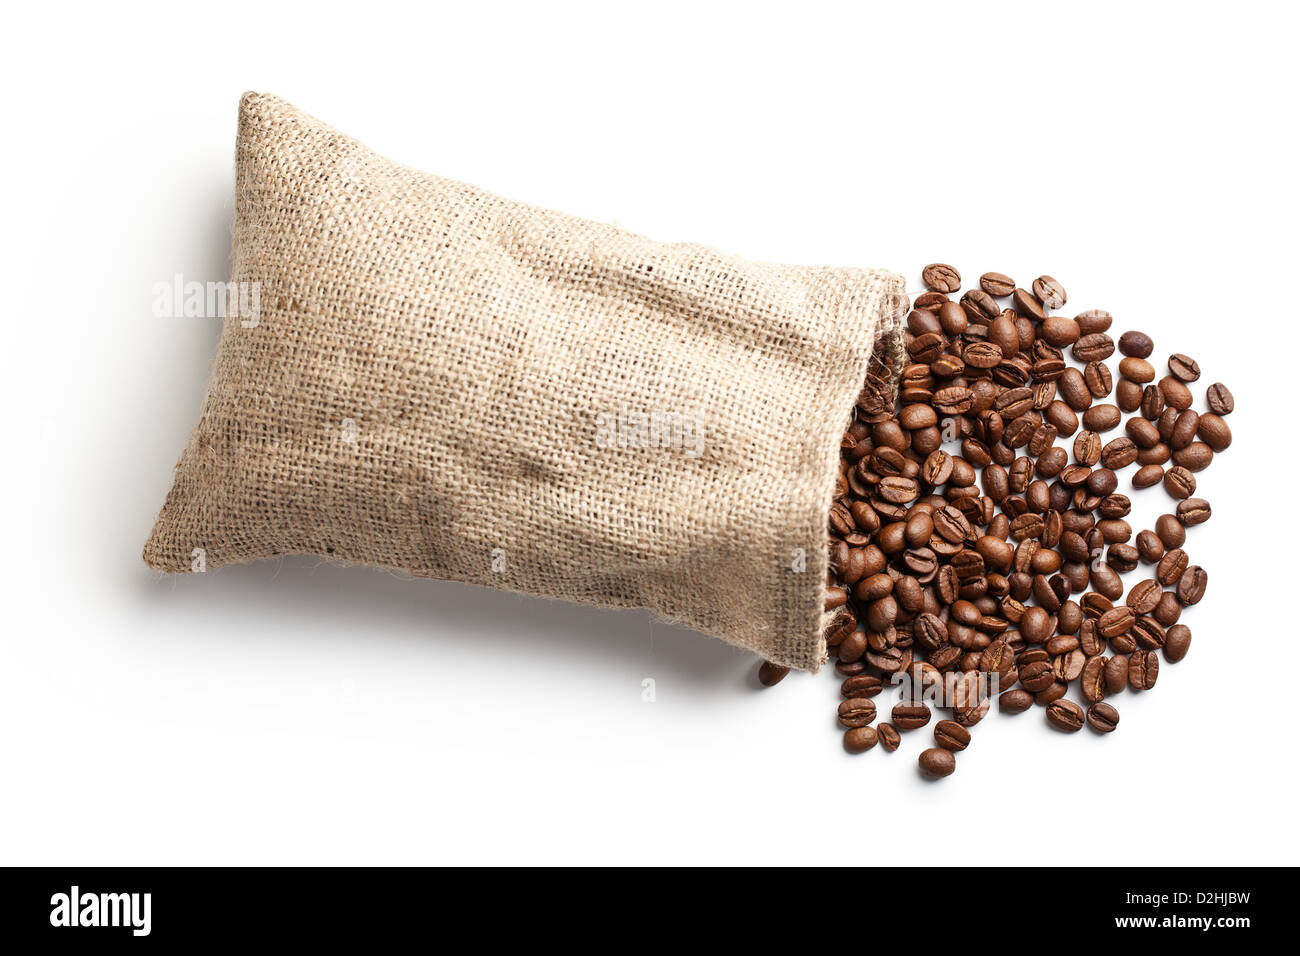 coffee beans in jute bag on white background - Stock Image